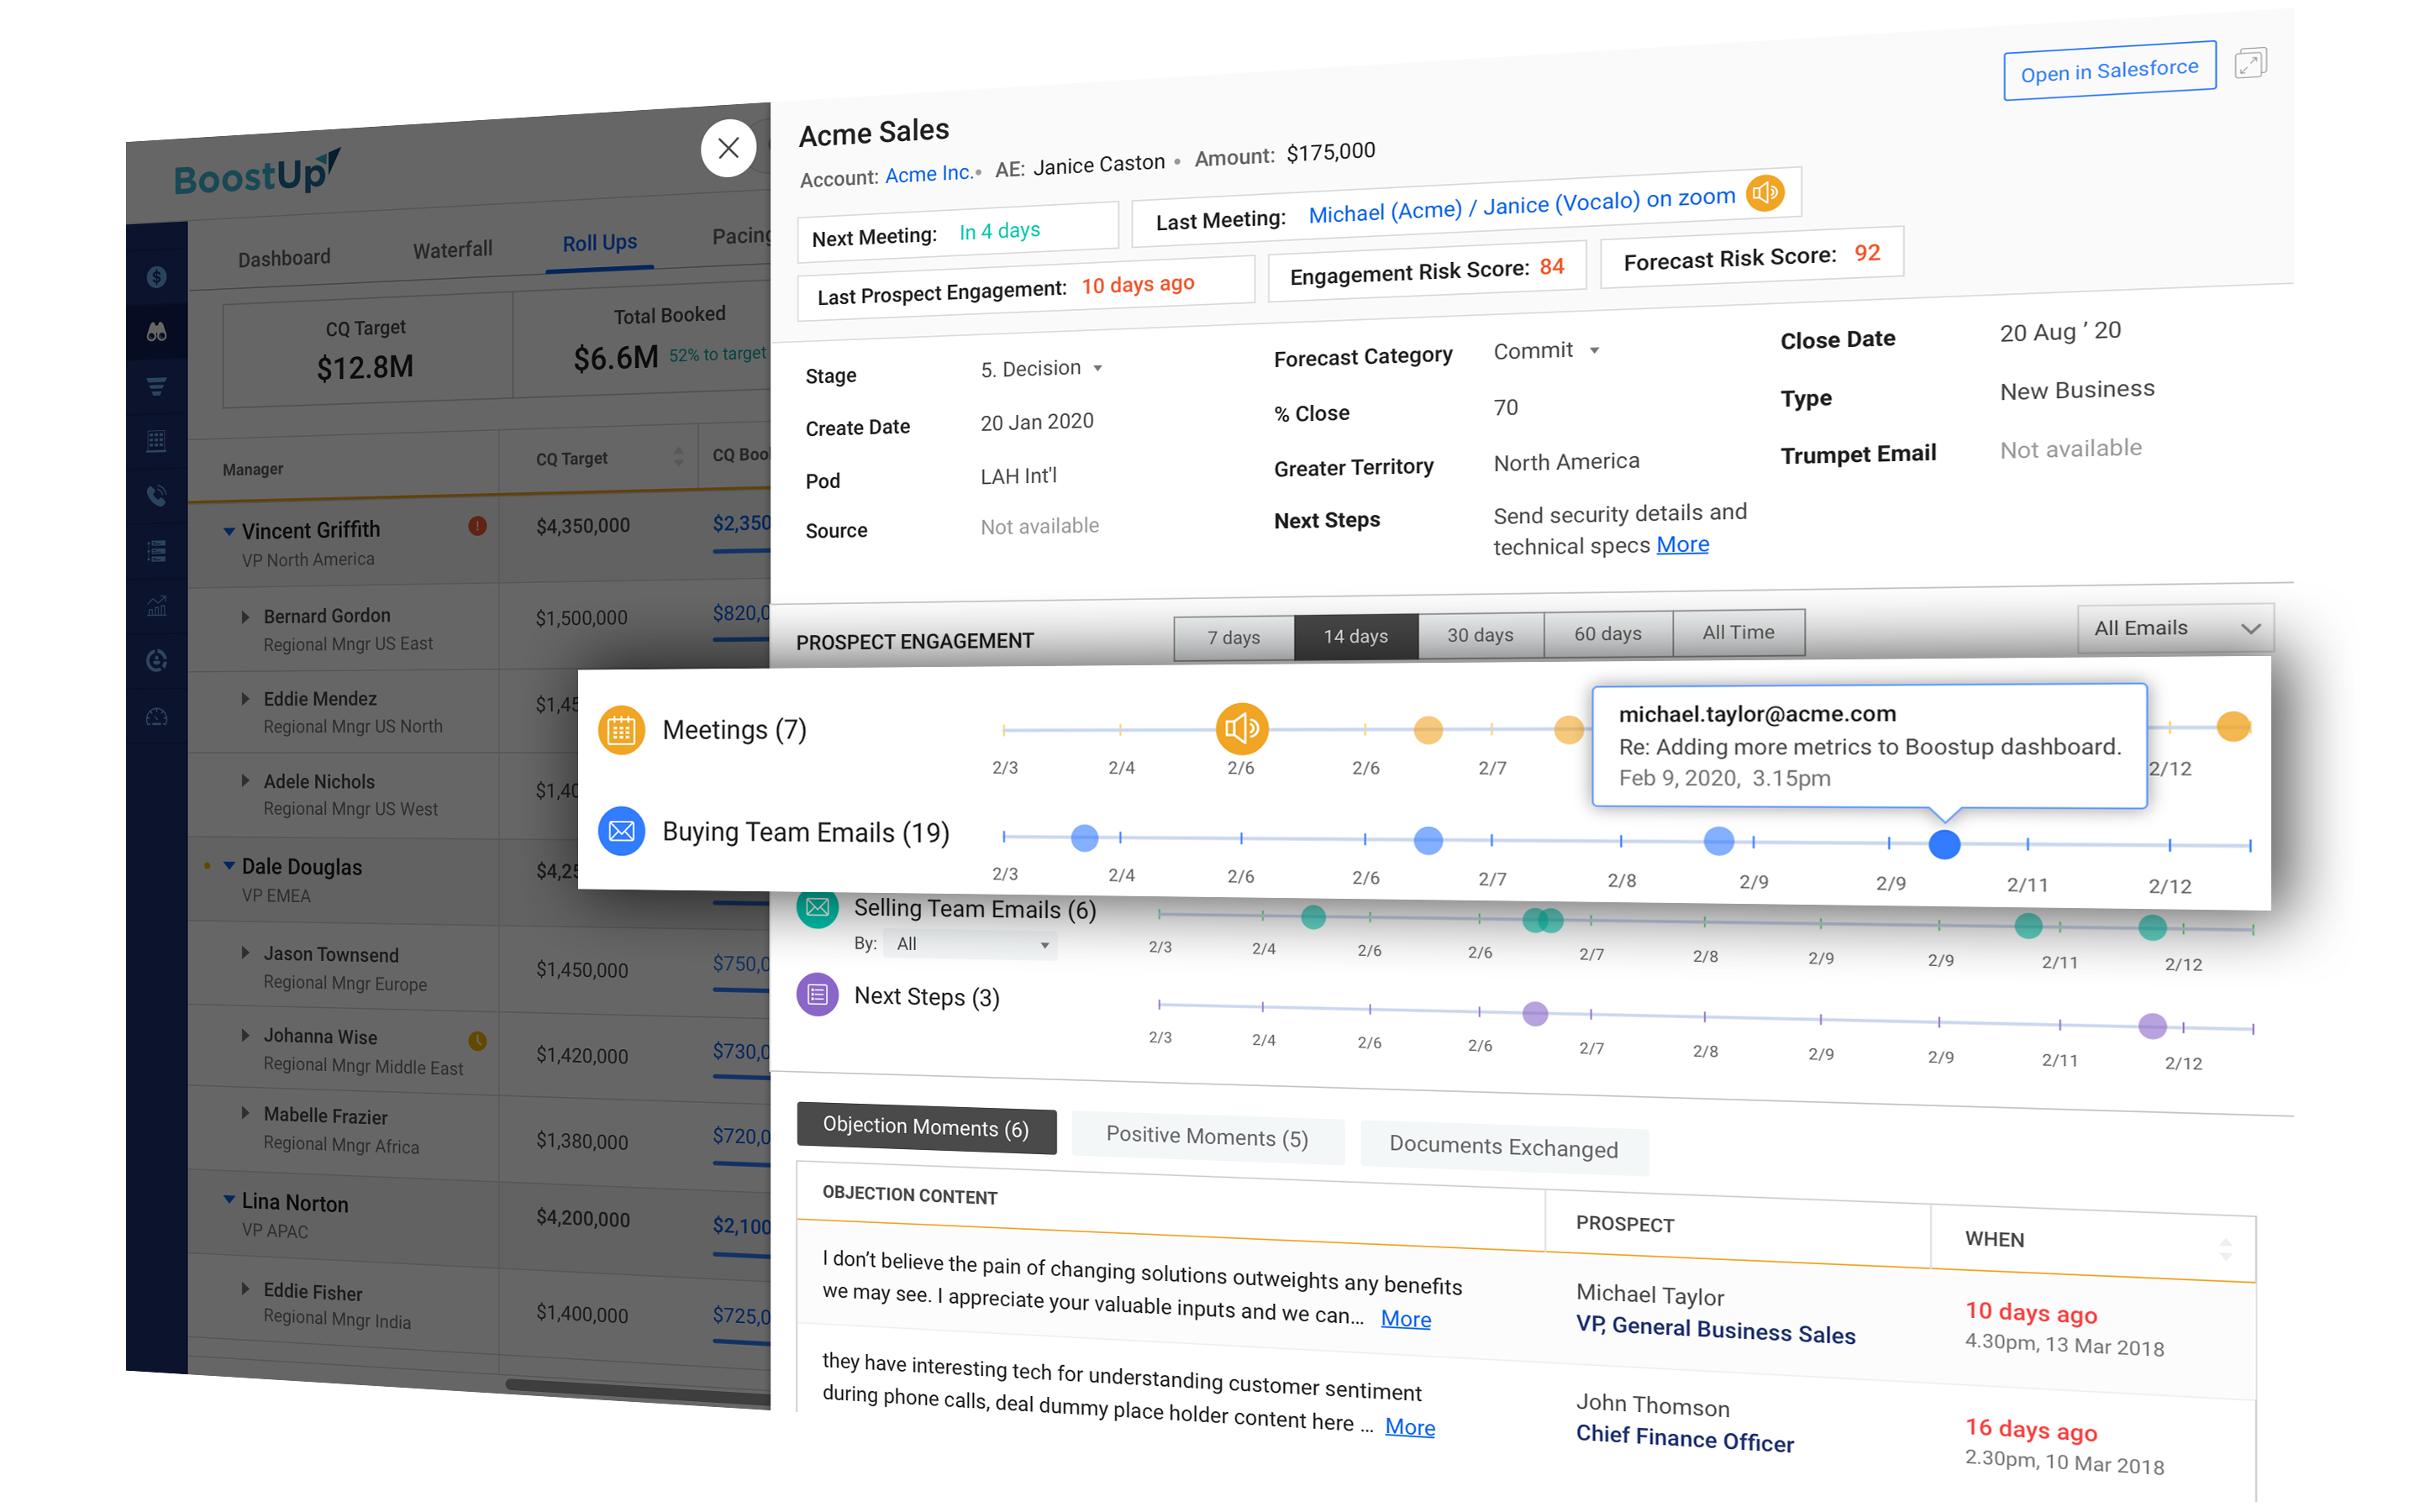 BoostUp Opportunity Insights and Engagement Timeline